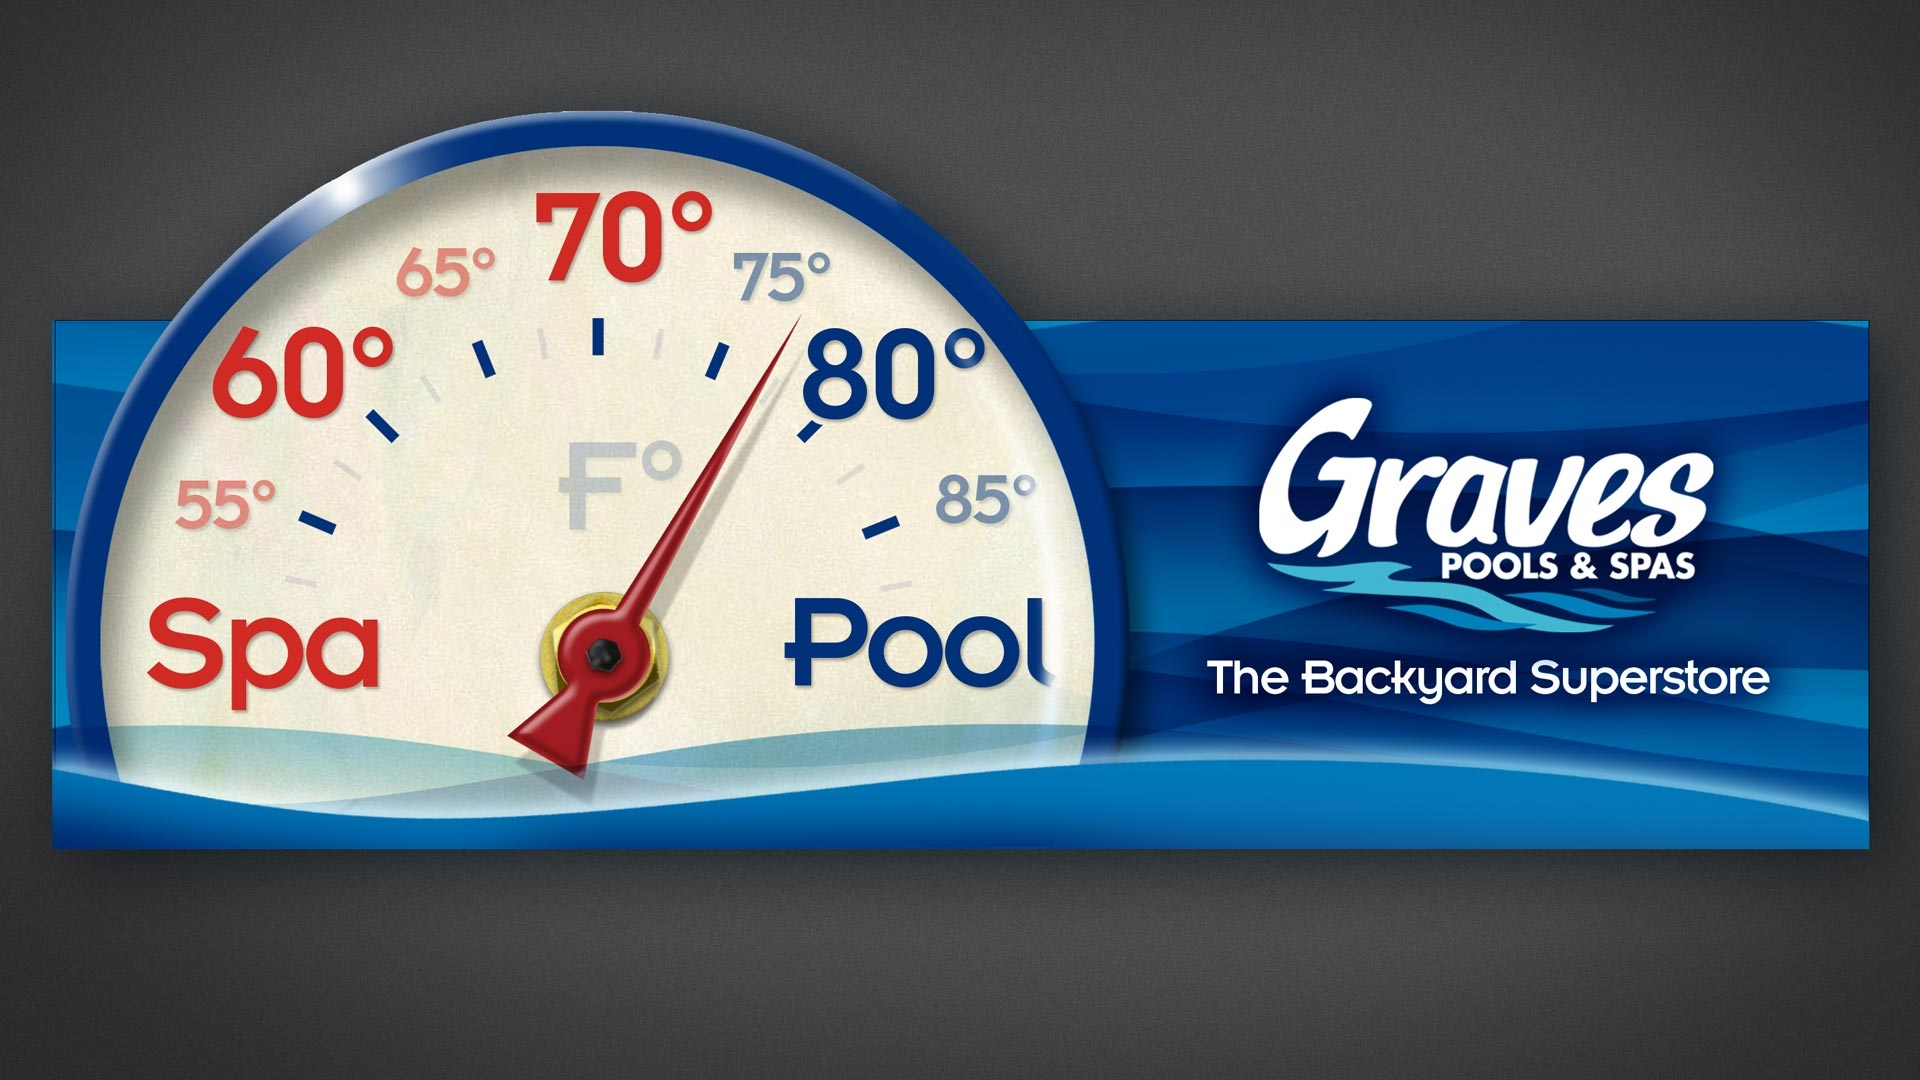 Graves Pools and Spas Outdoor Advertising